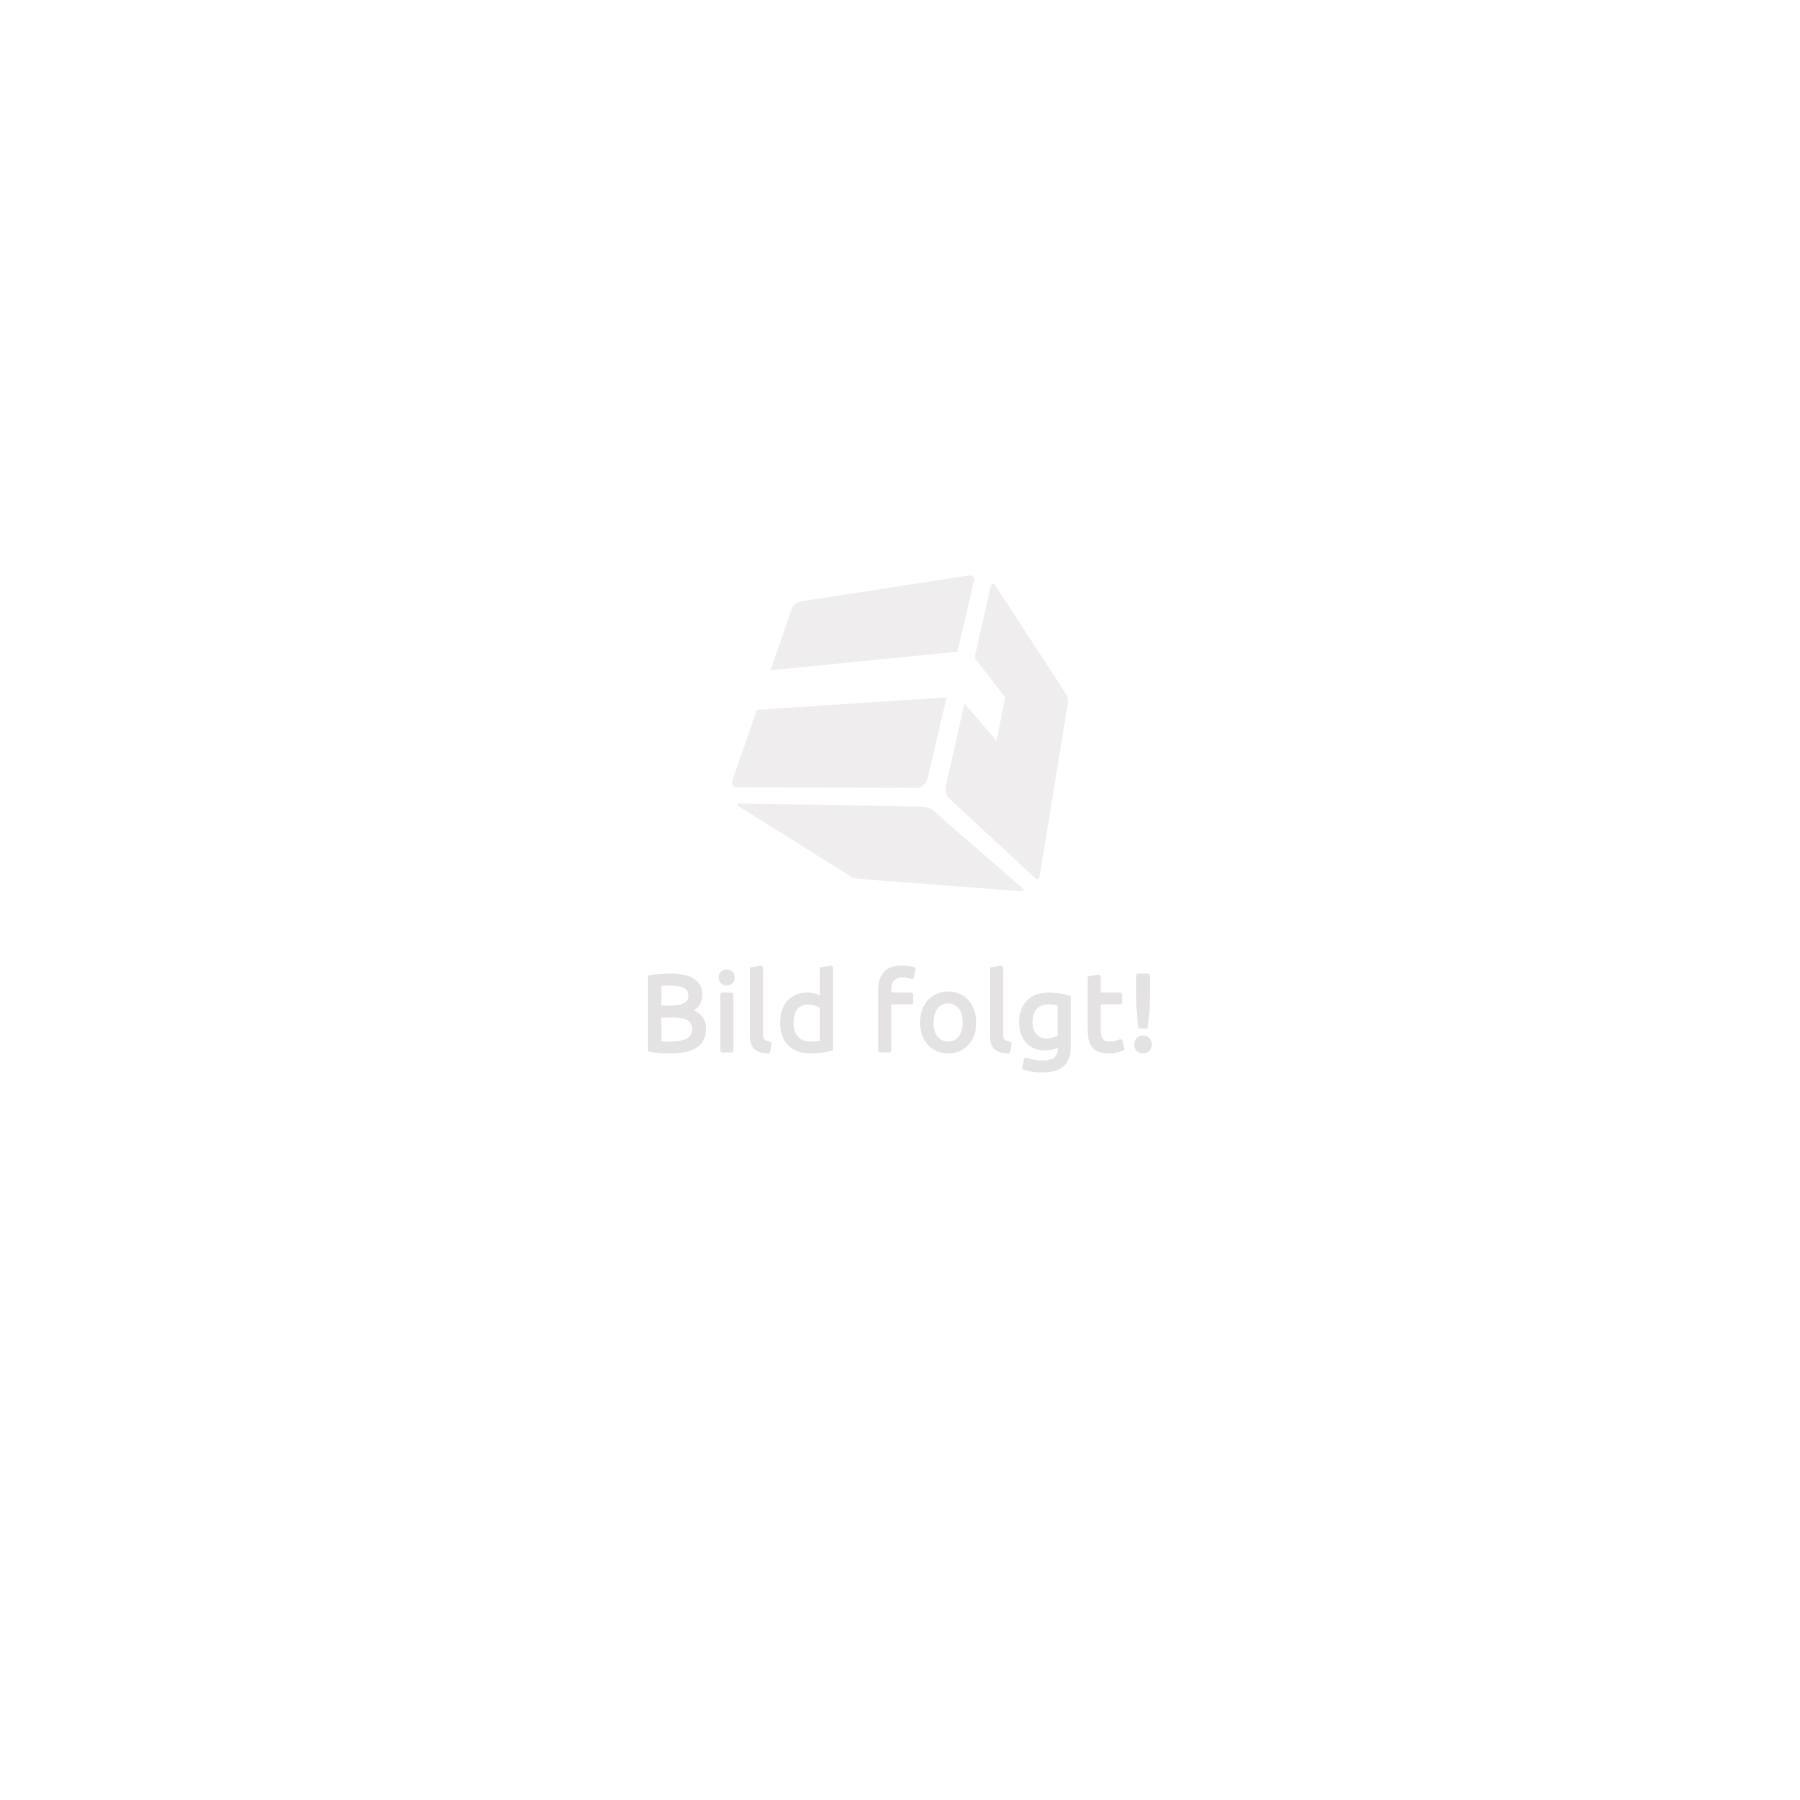 Lit de camp, d'appoint, pliable + Housse de transport Par 4 bleu